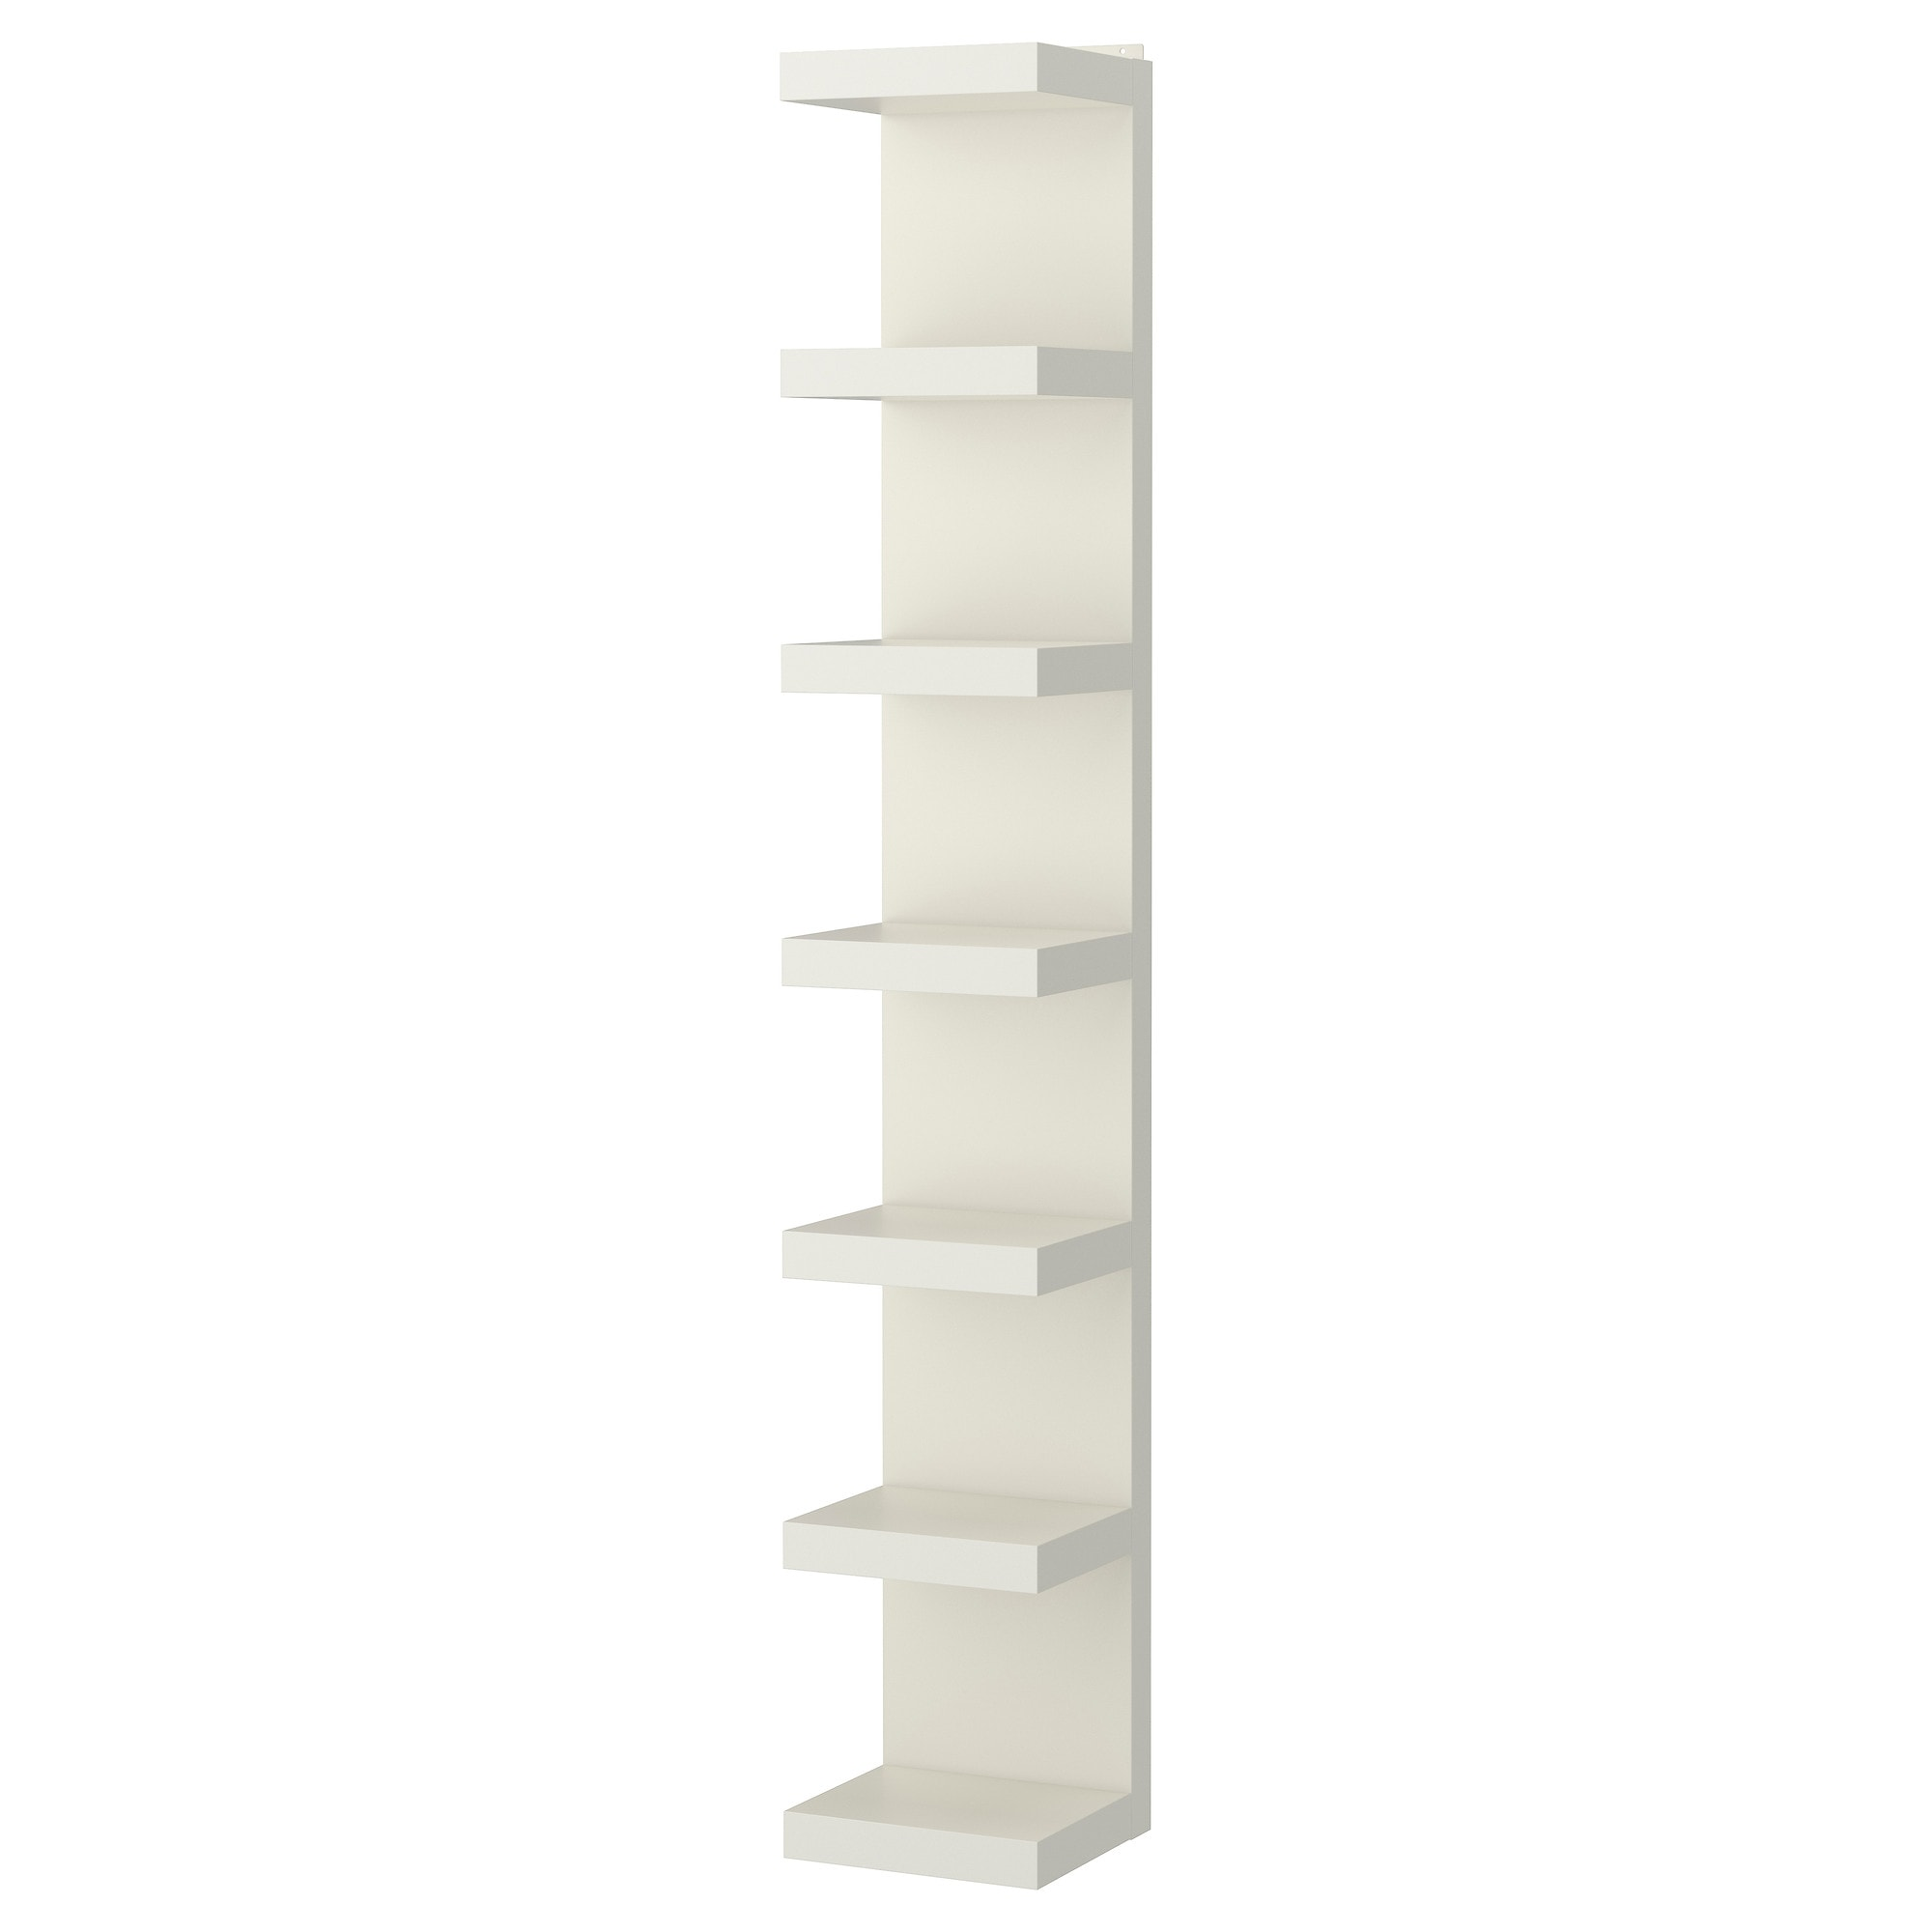 official photos f07bd ba007 Wall shelf unit LACK white